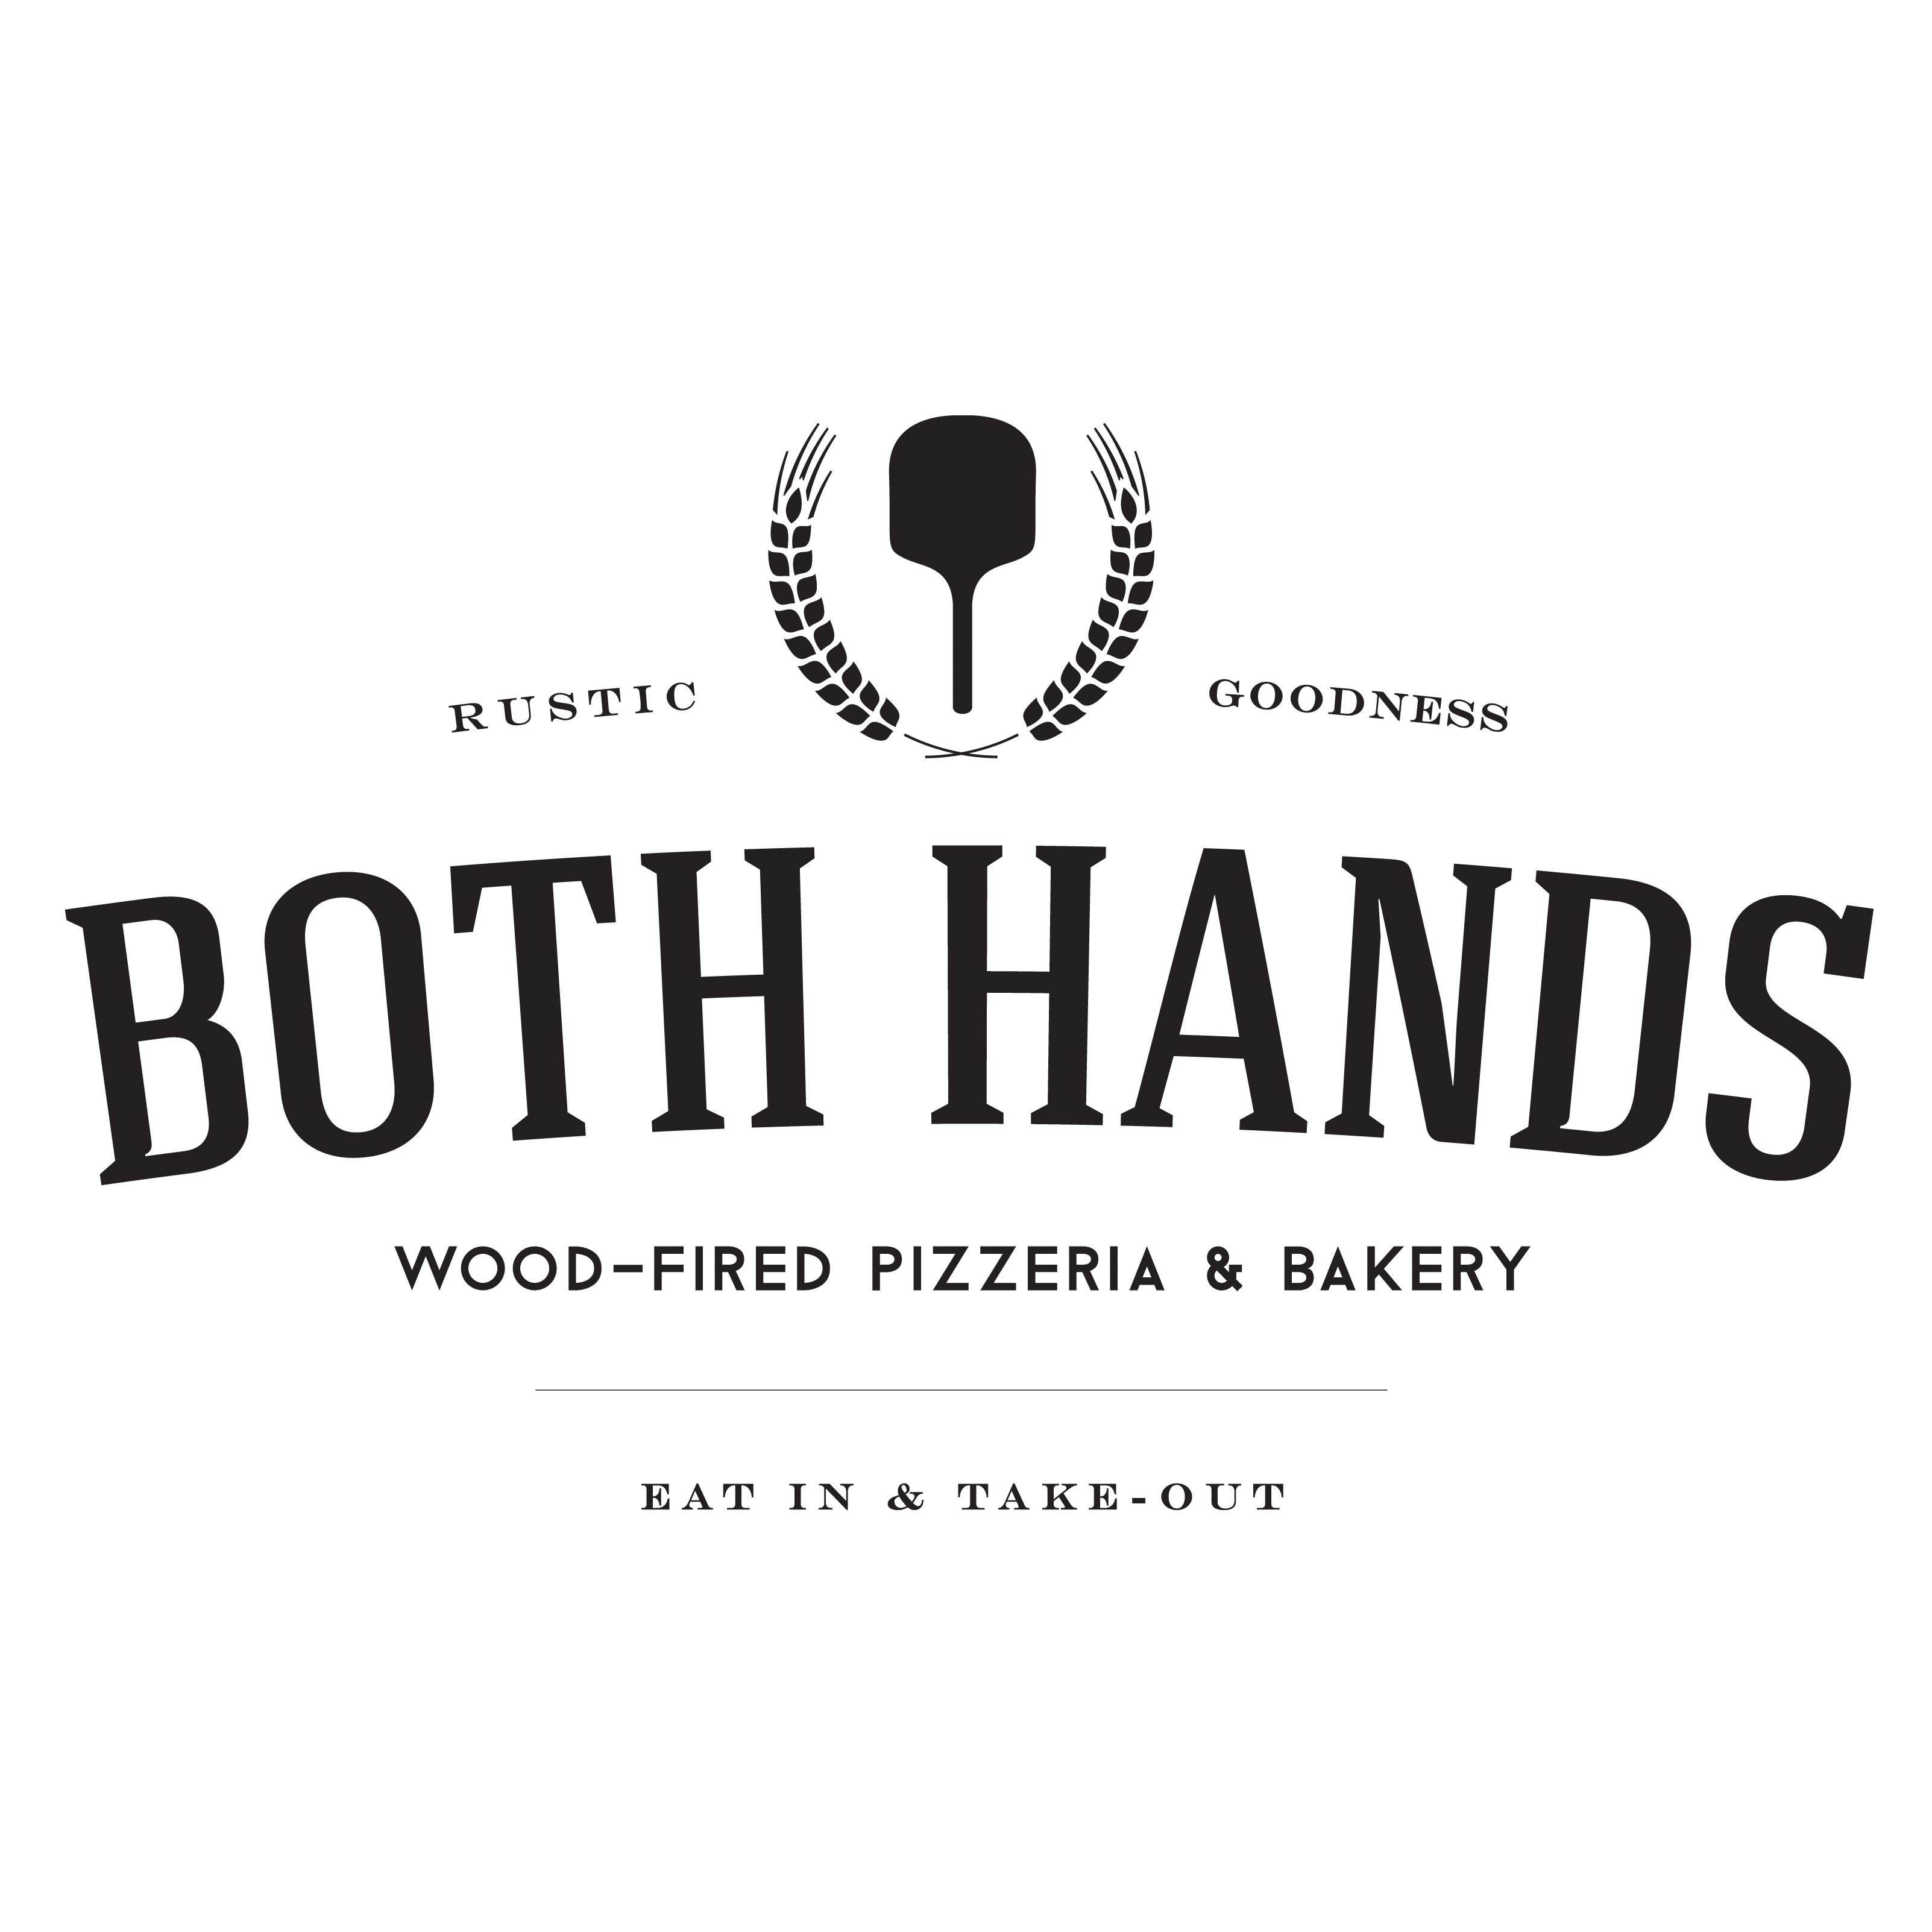 Both Hands Wood-Fired Pizzeria & Bakery